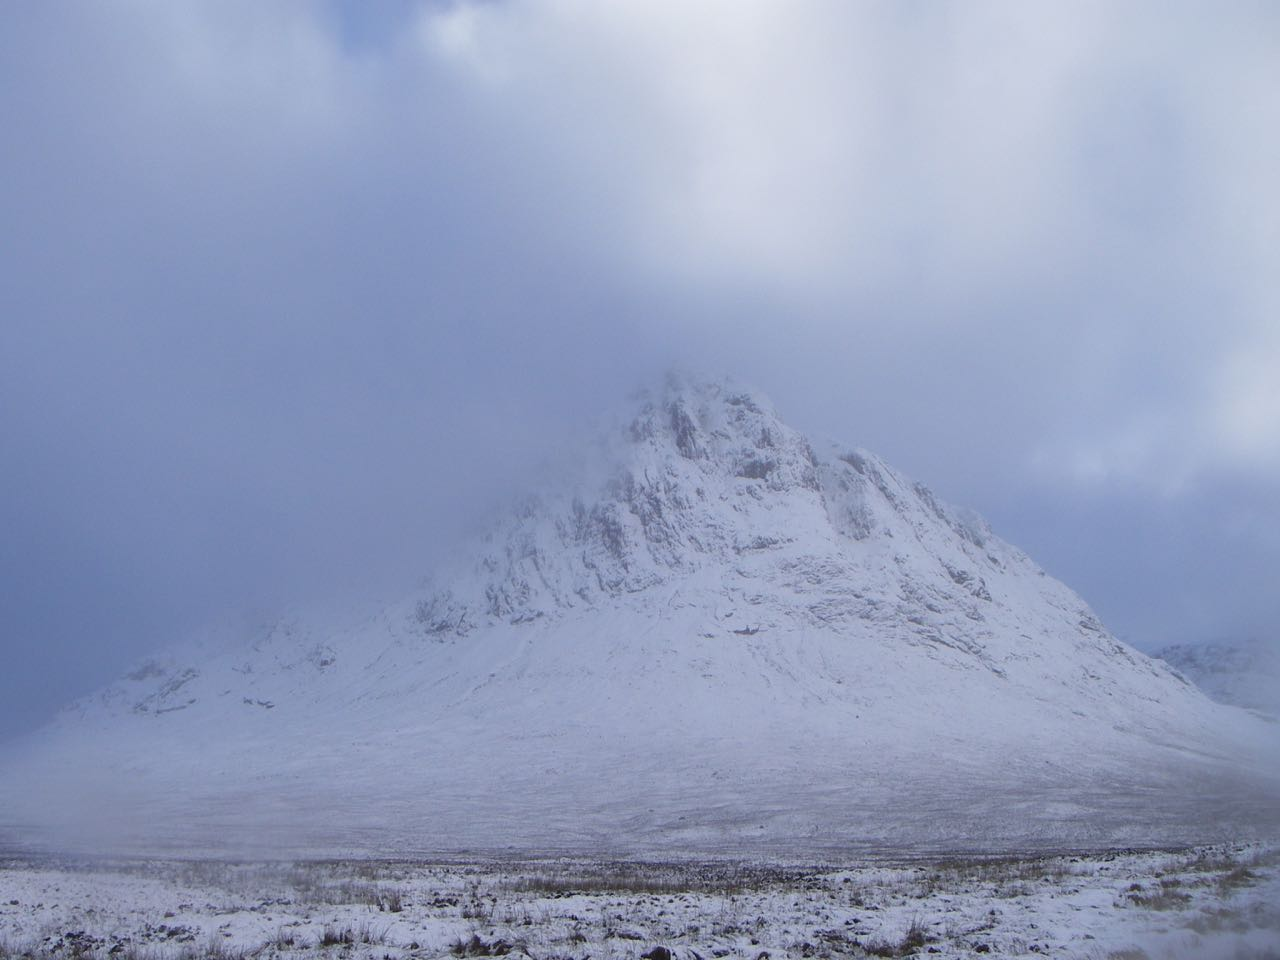 The Buachaille looking magical in a sea of pearly mist